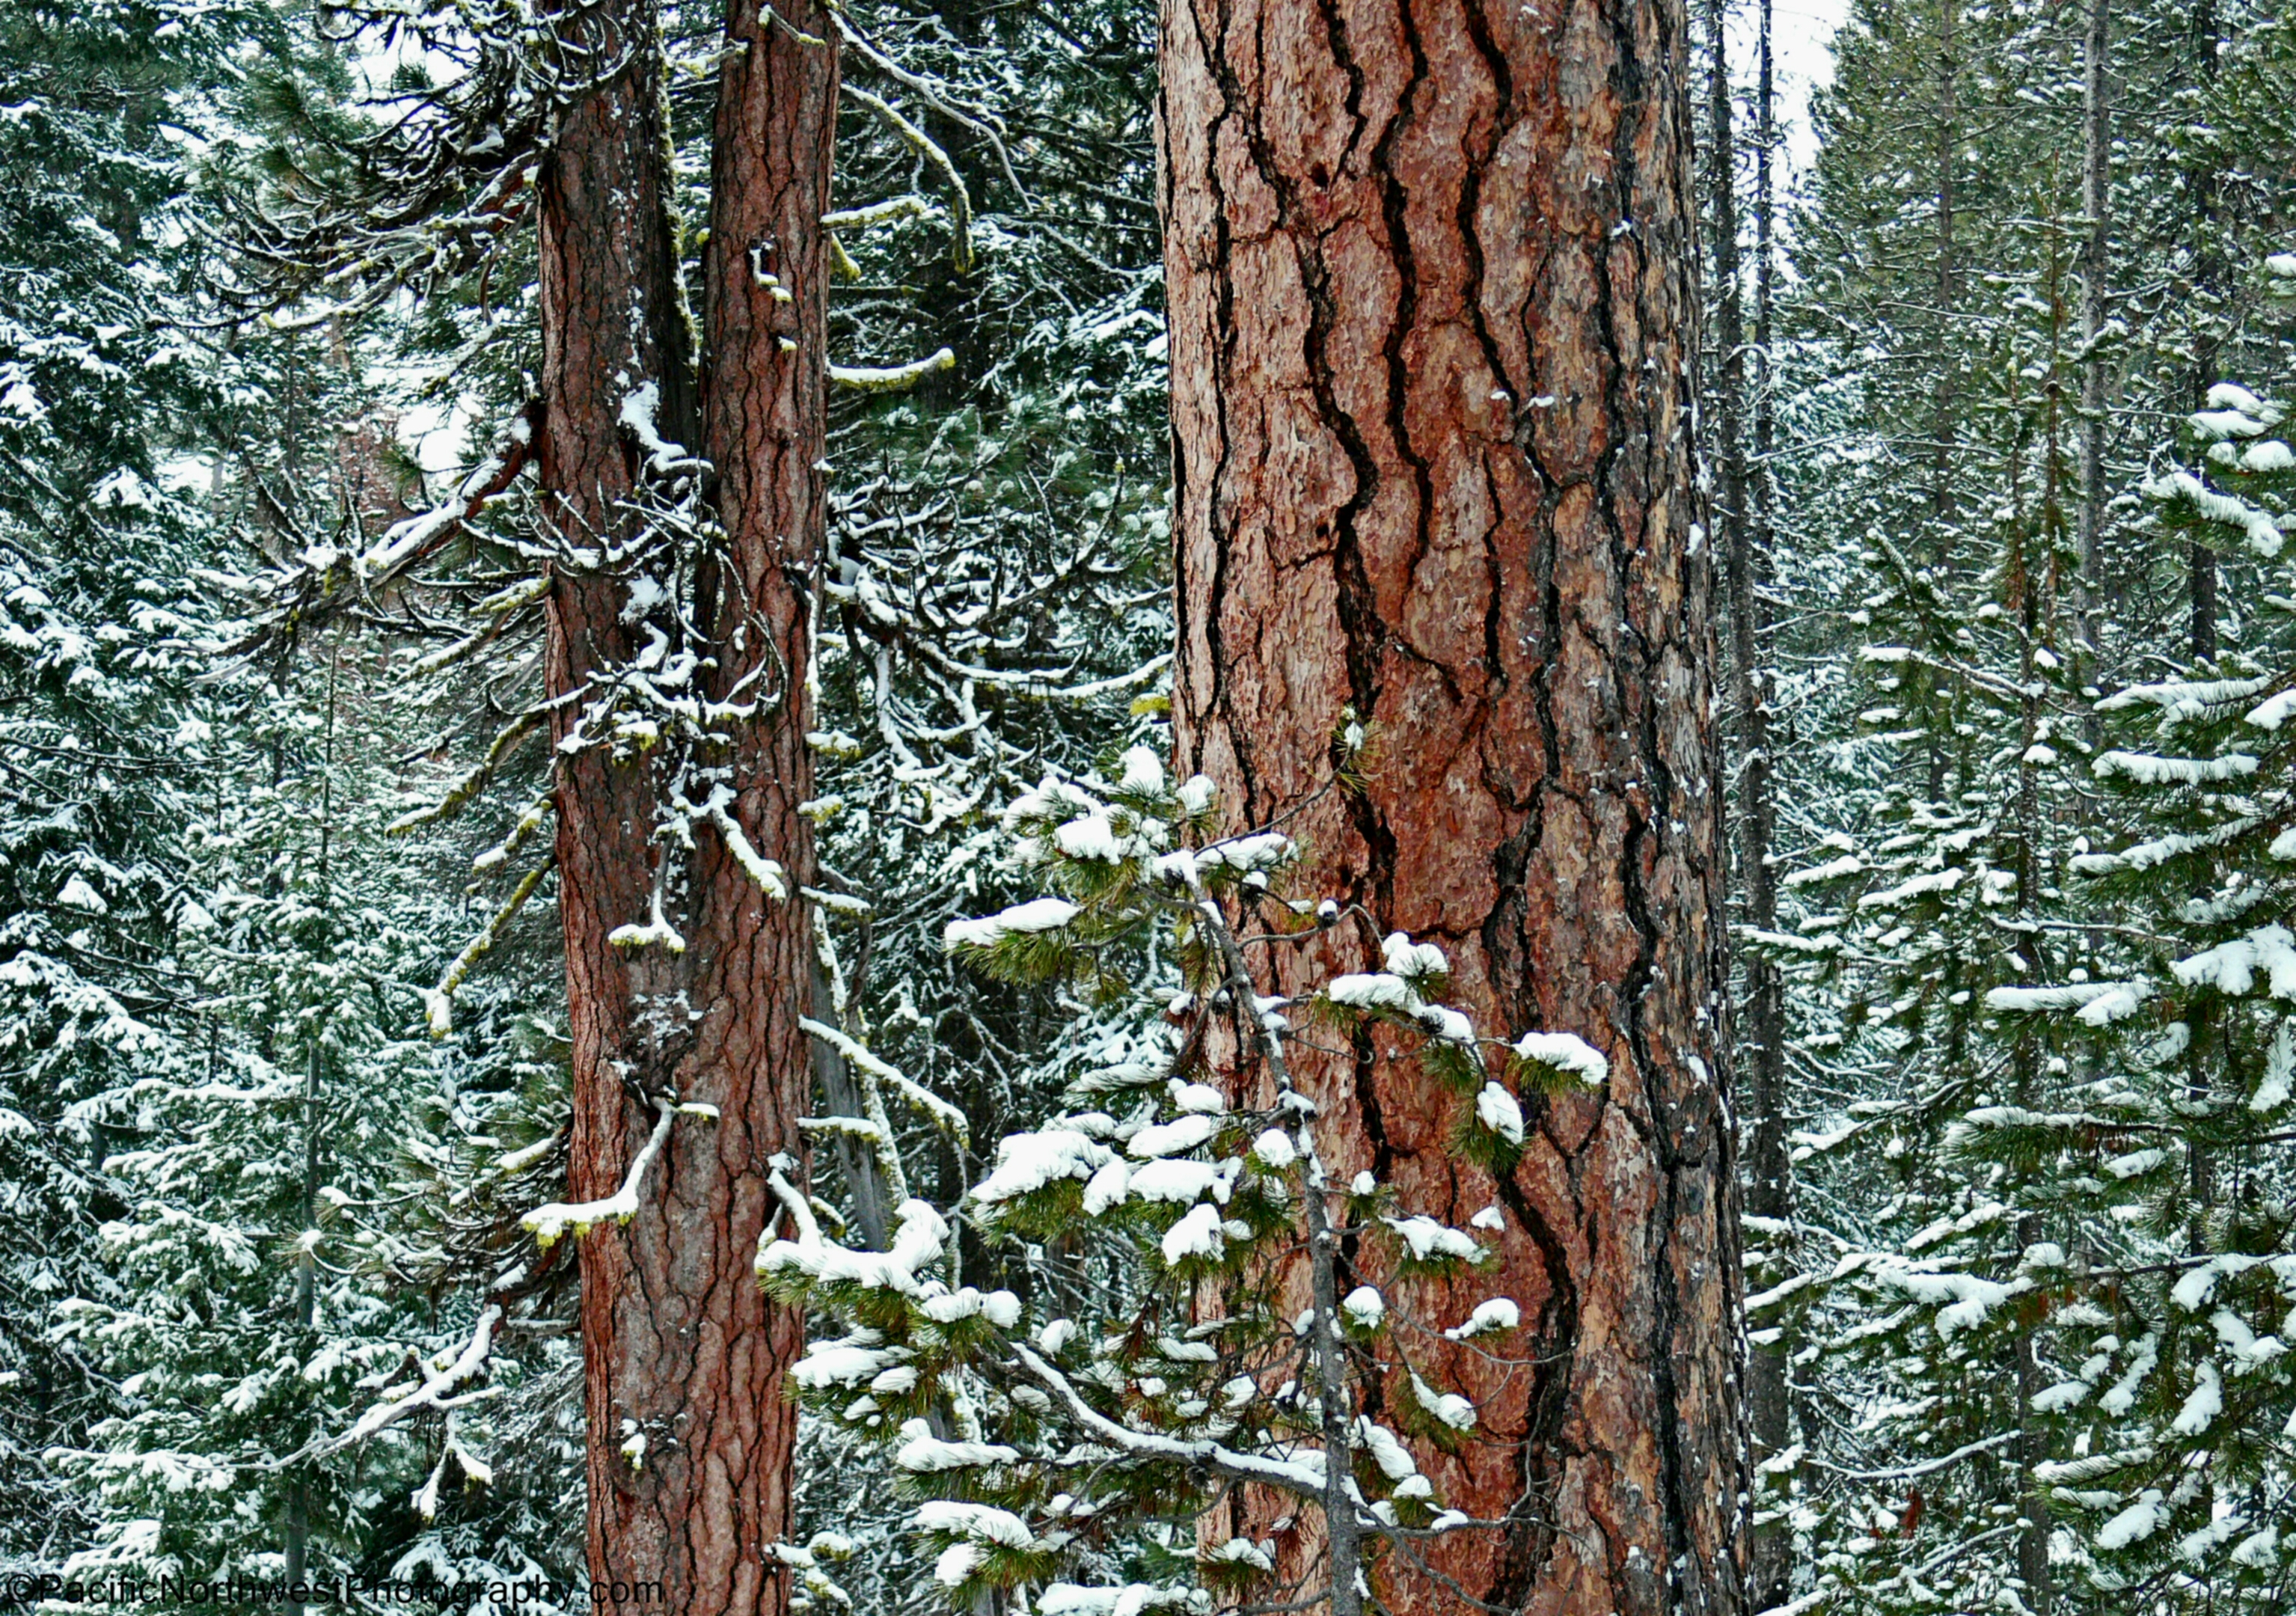 Winter in the Deschutes National Forest